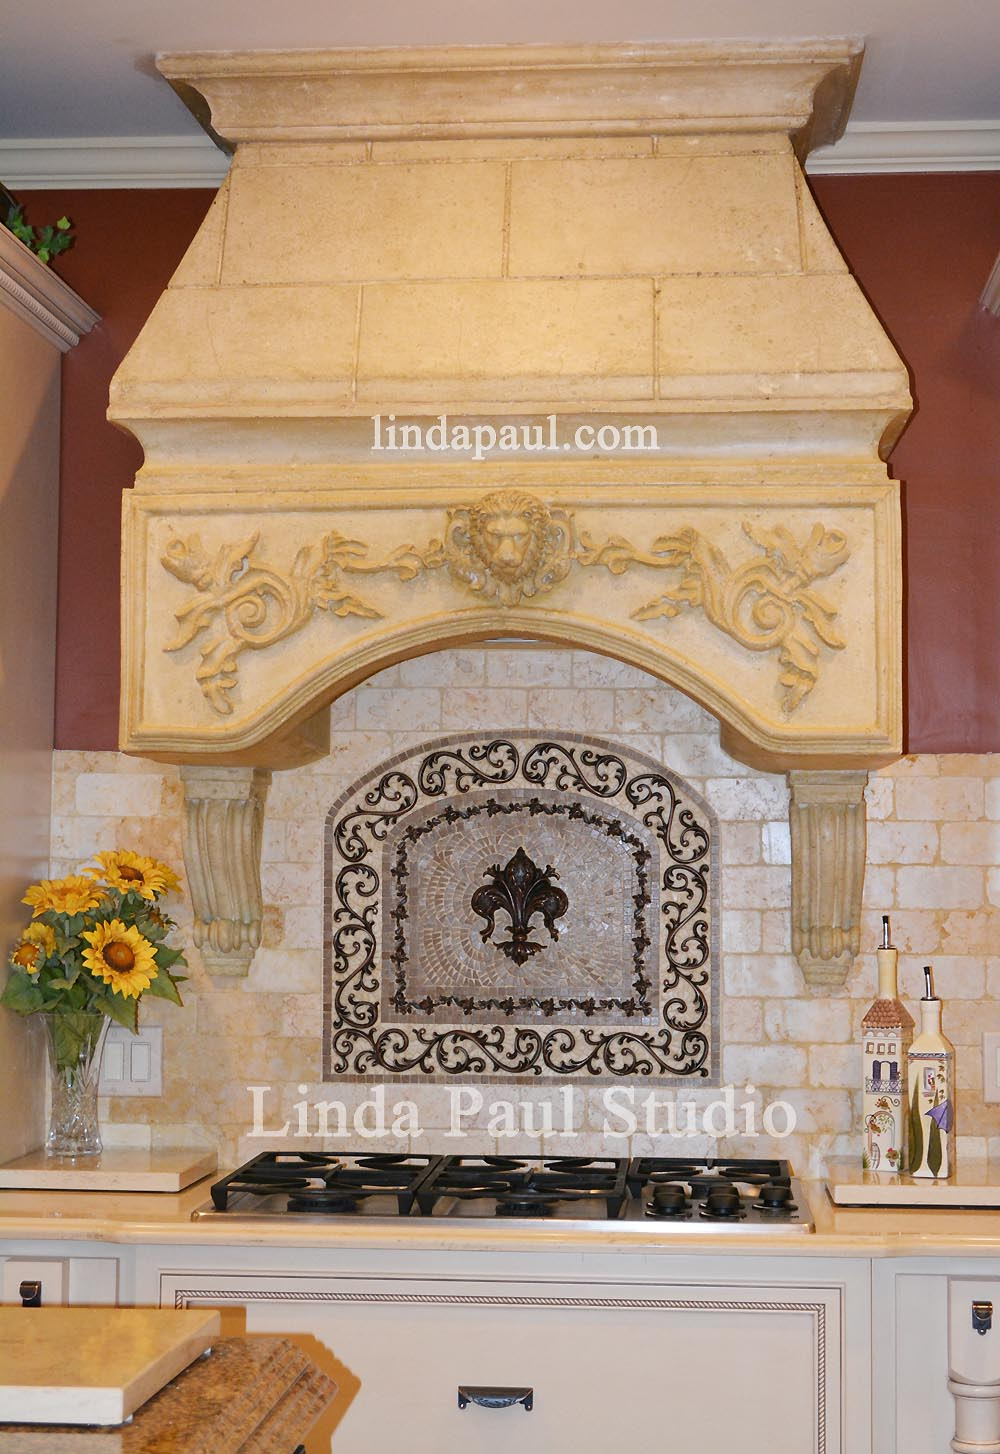 Charmant Stunning Kitchen Backsplash Idea With Medallion And Faux Stone Hood